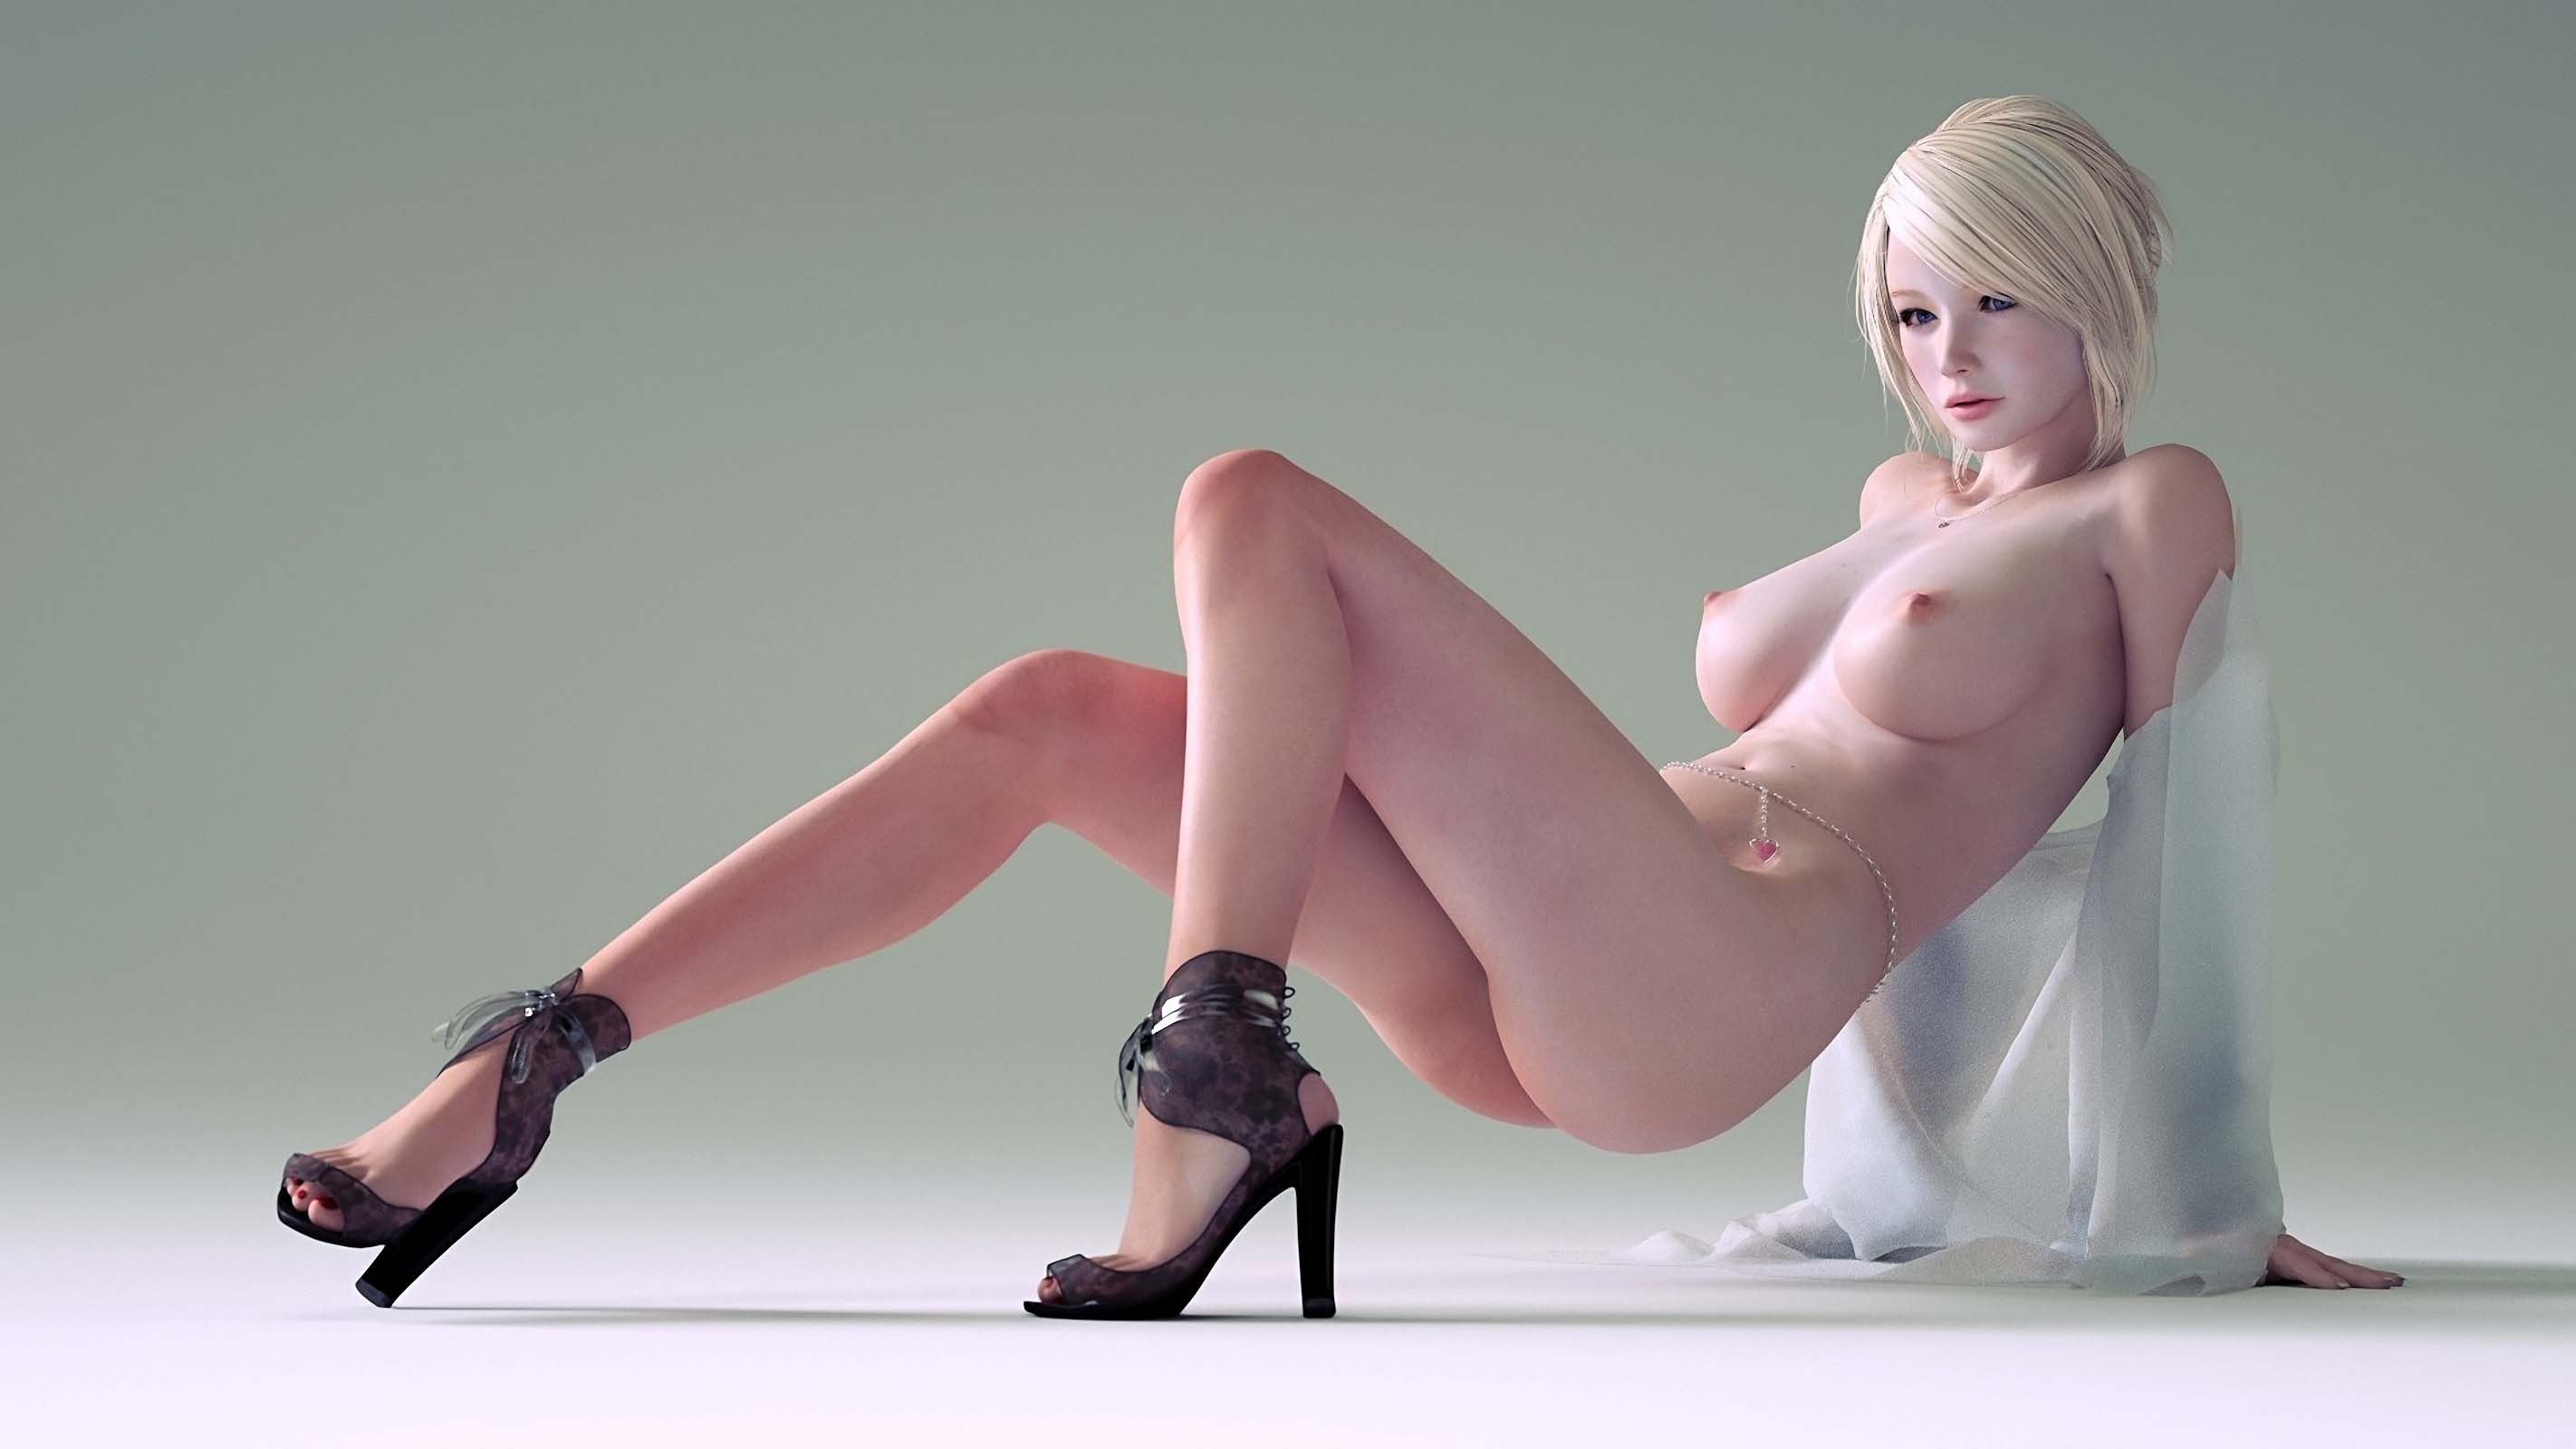 3d custom girl erotic game skins nackt pics